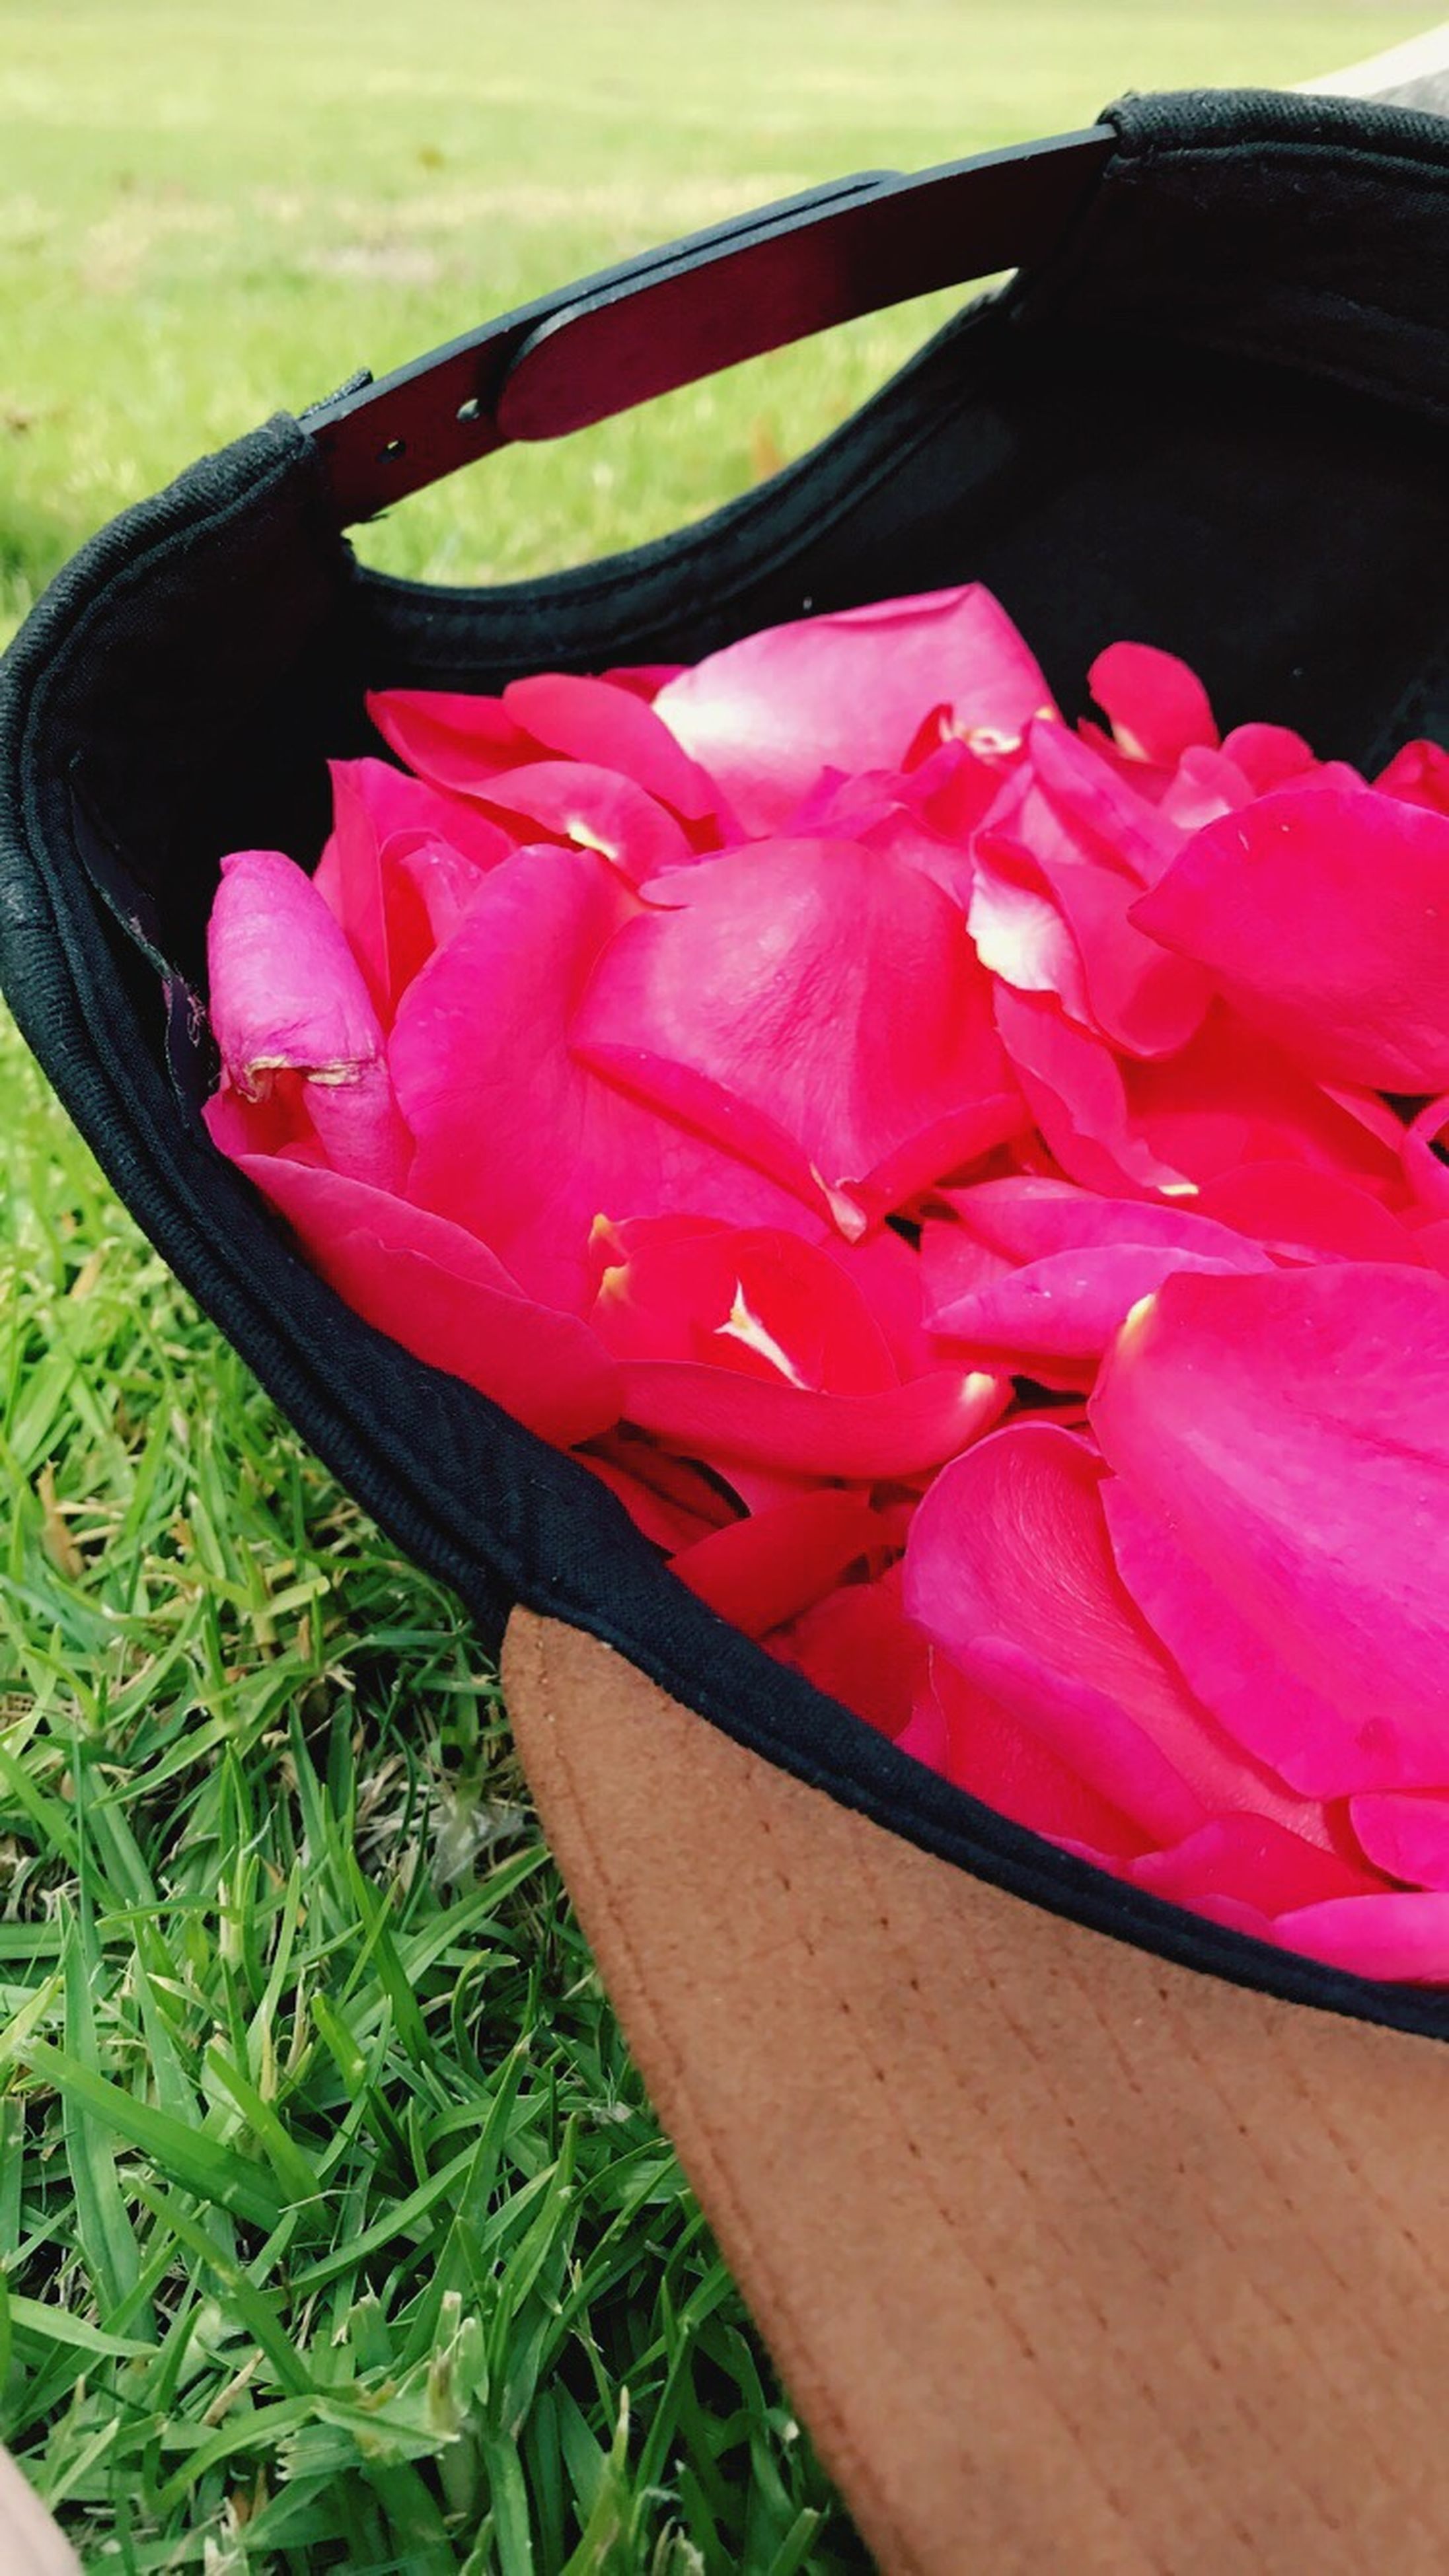 grass, petal, red, close-up, freshness, flower, outdoors, nature, day, no people